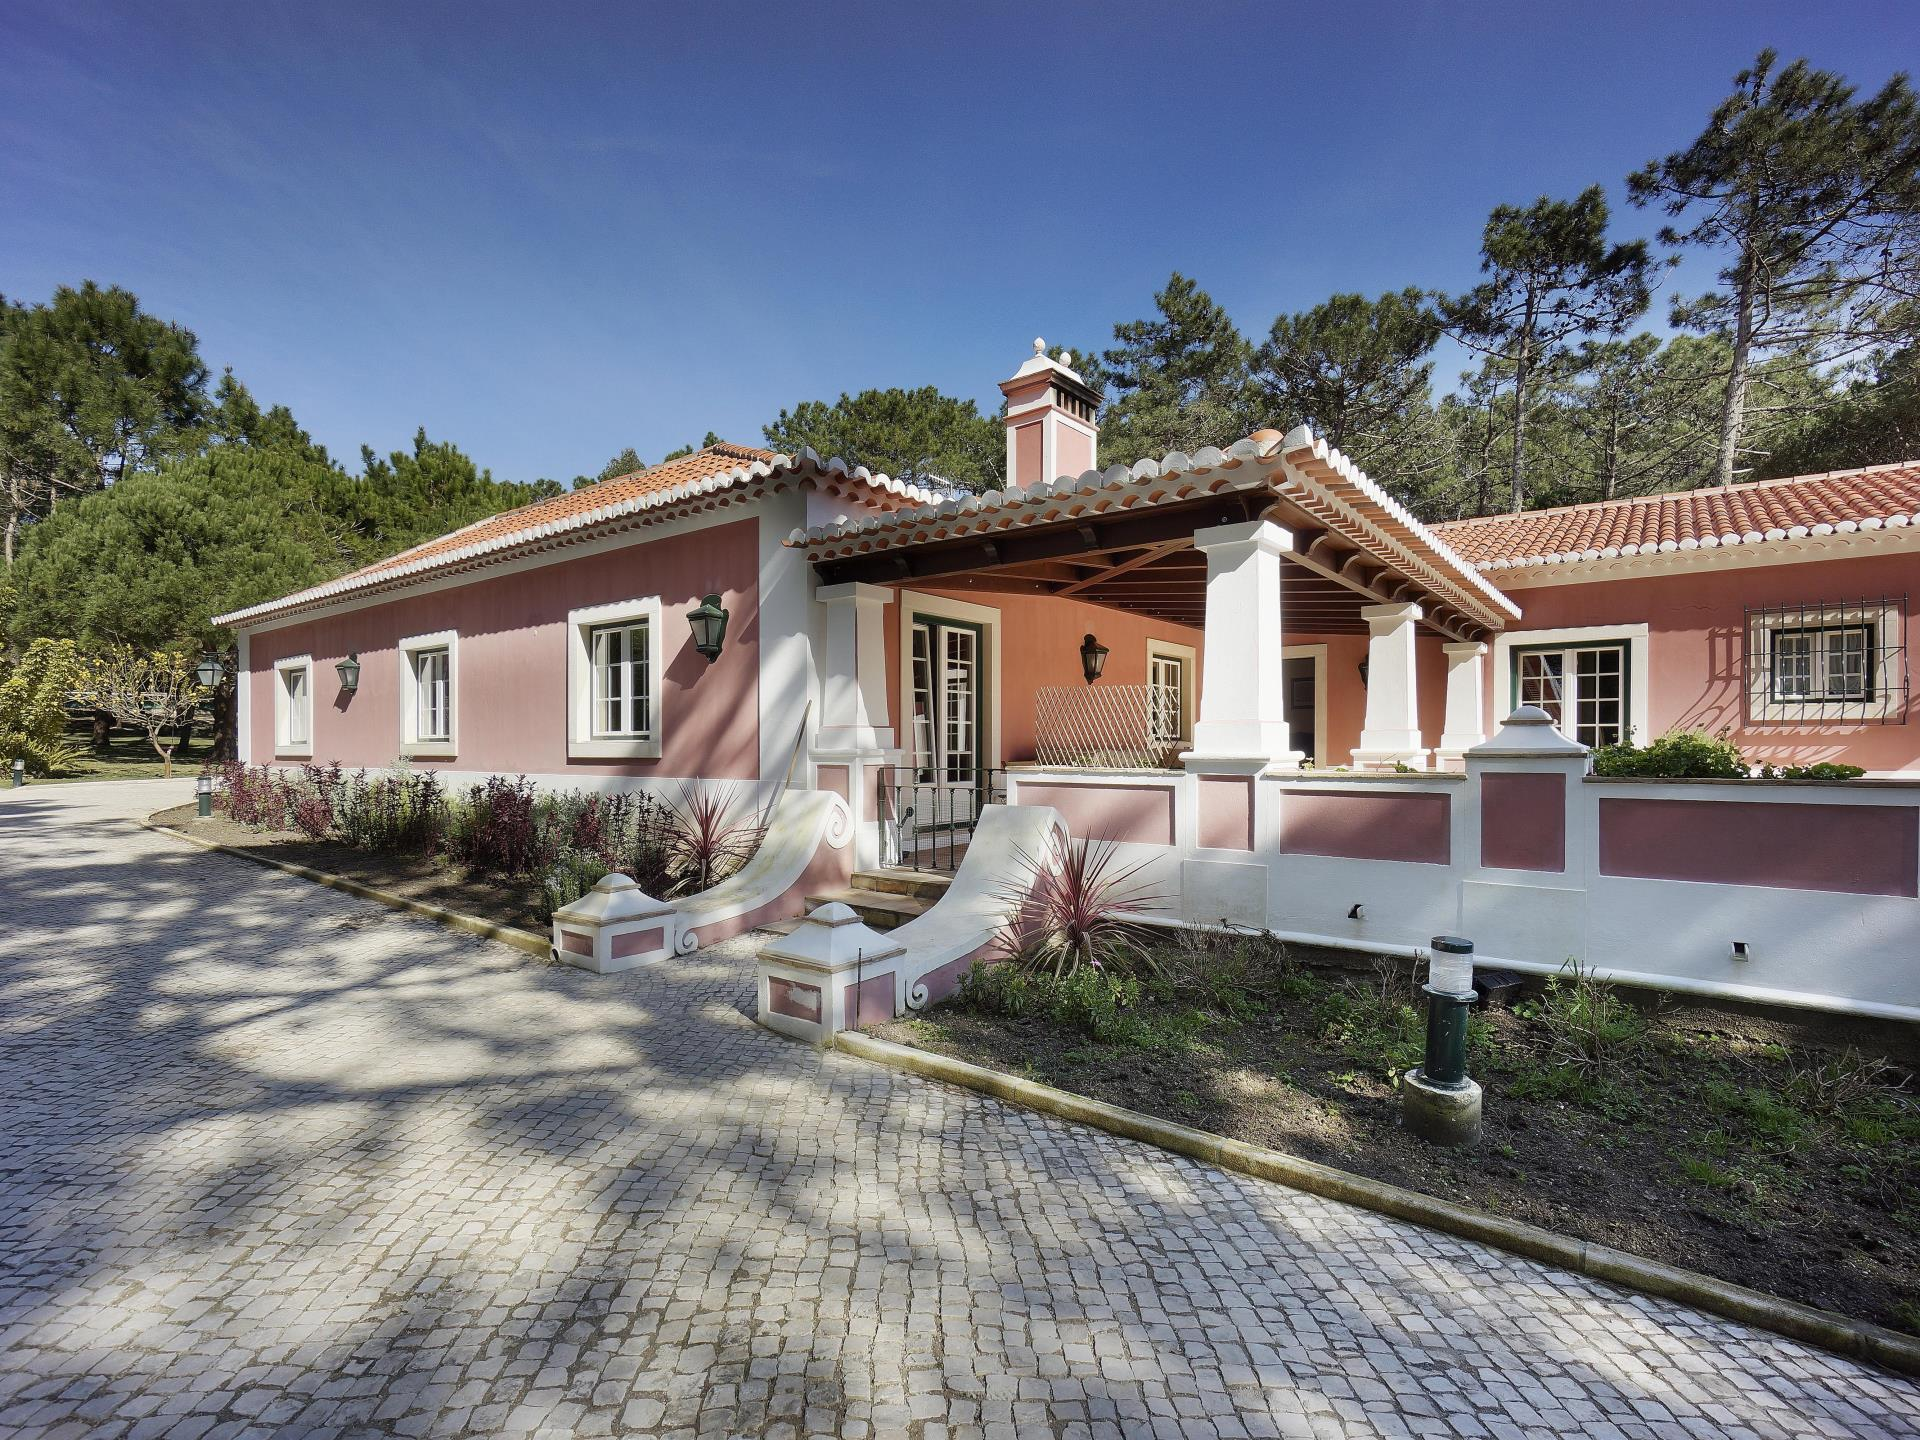 Single Family Home for Sale at Detached house, 5 bedrooms, for Sale Sintra, Lisboa Portugal